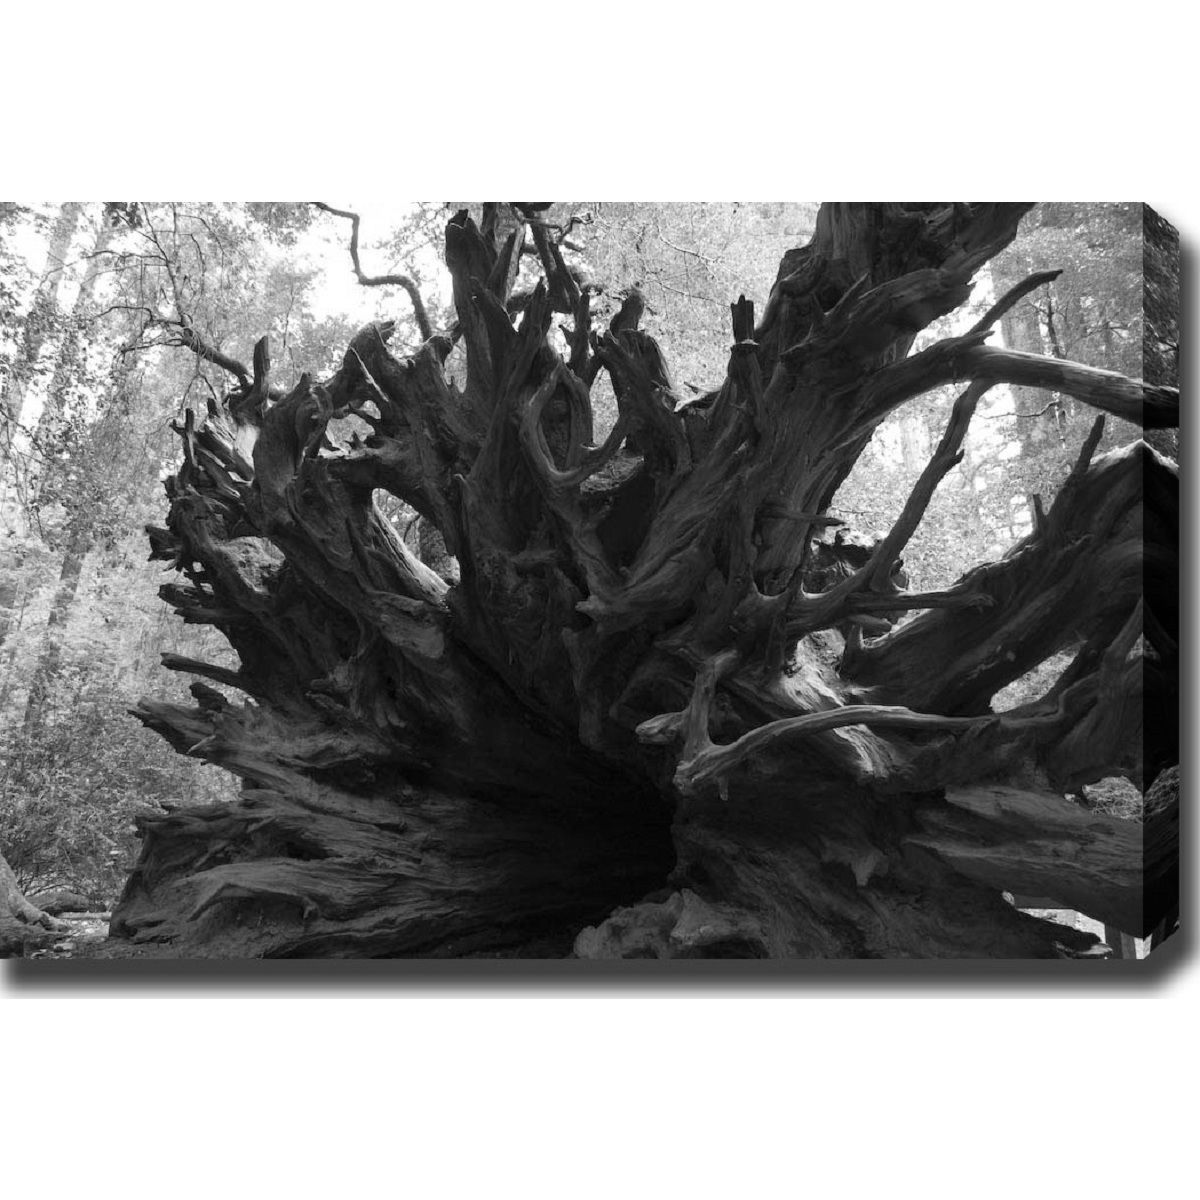 YGC 'Root' Gallery-wrapped Photography Art